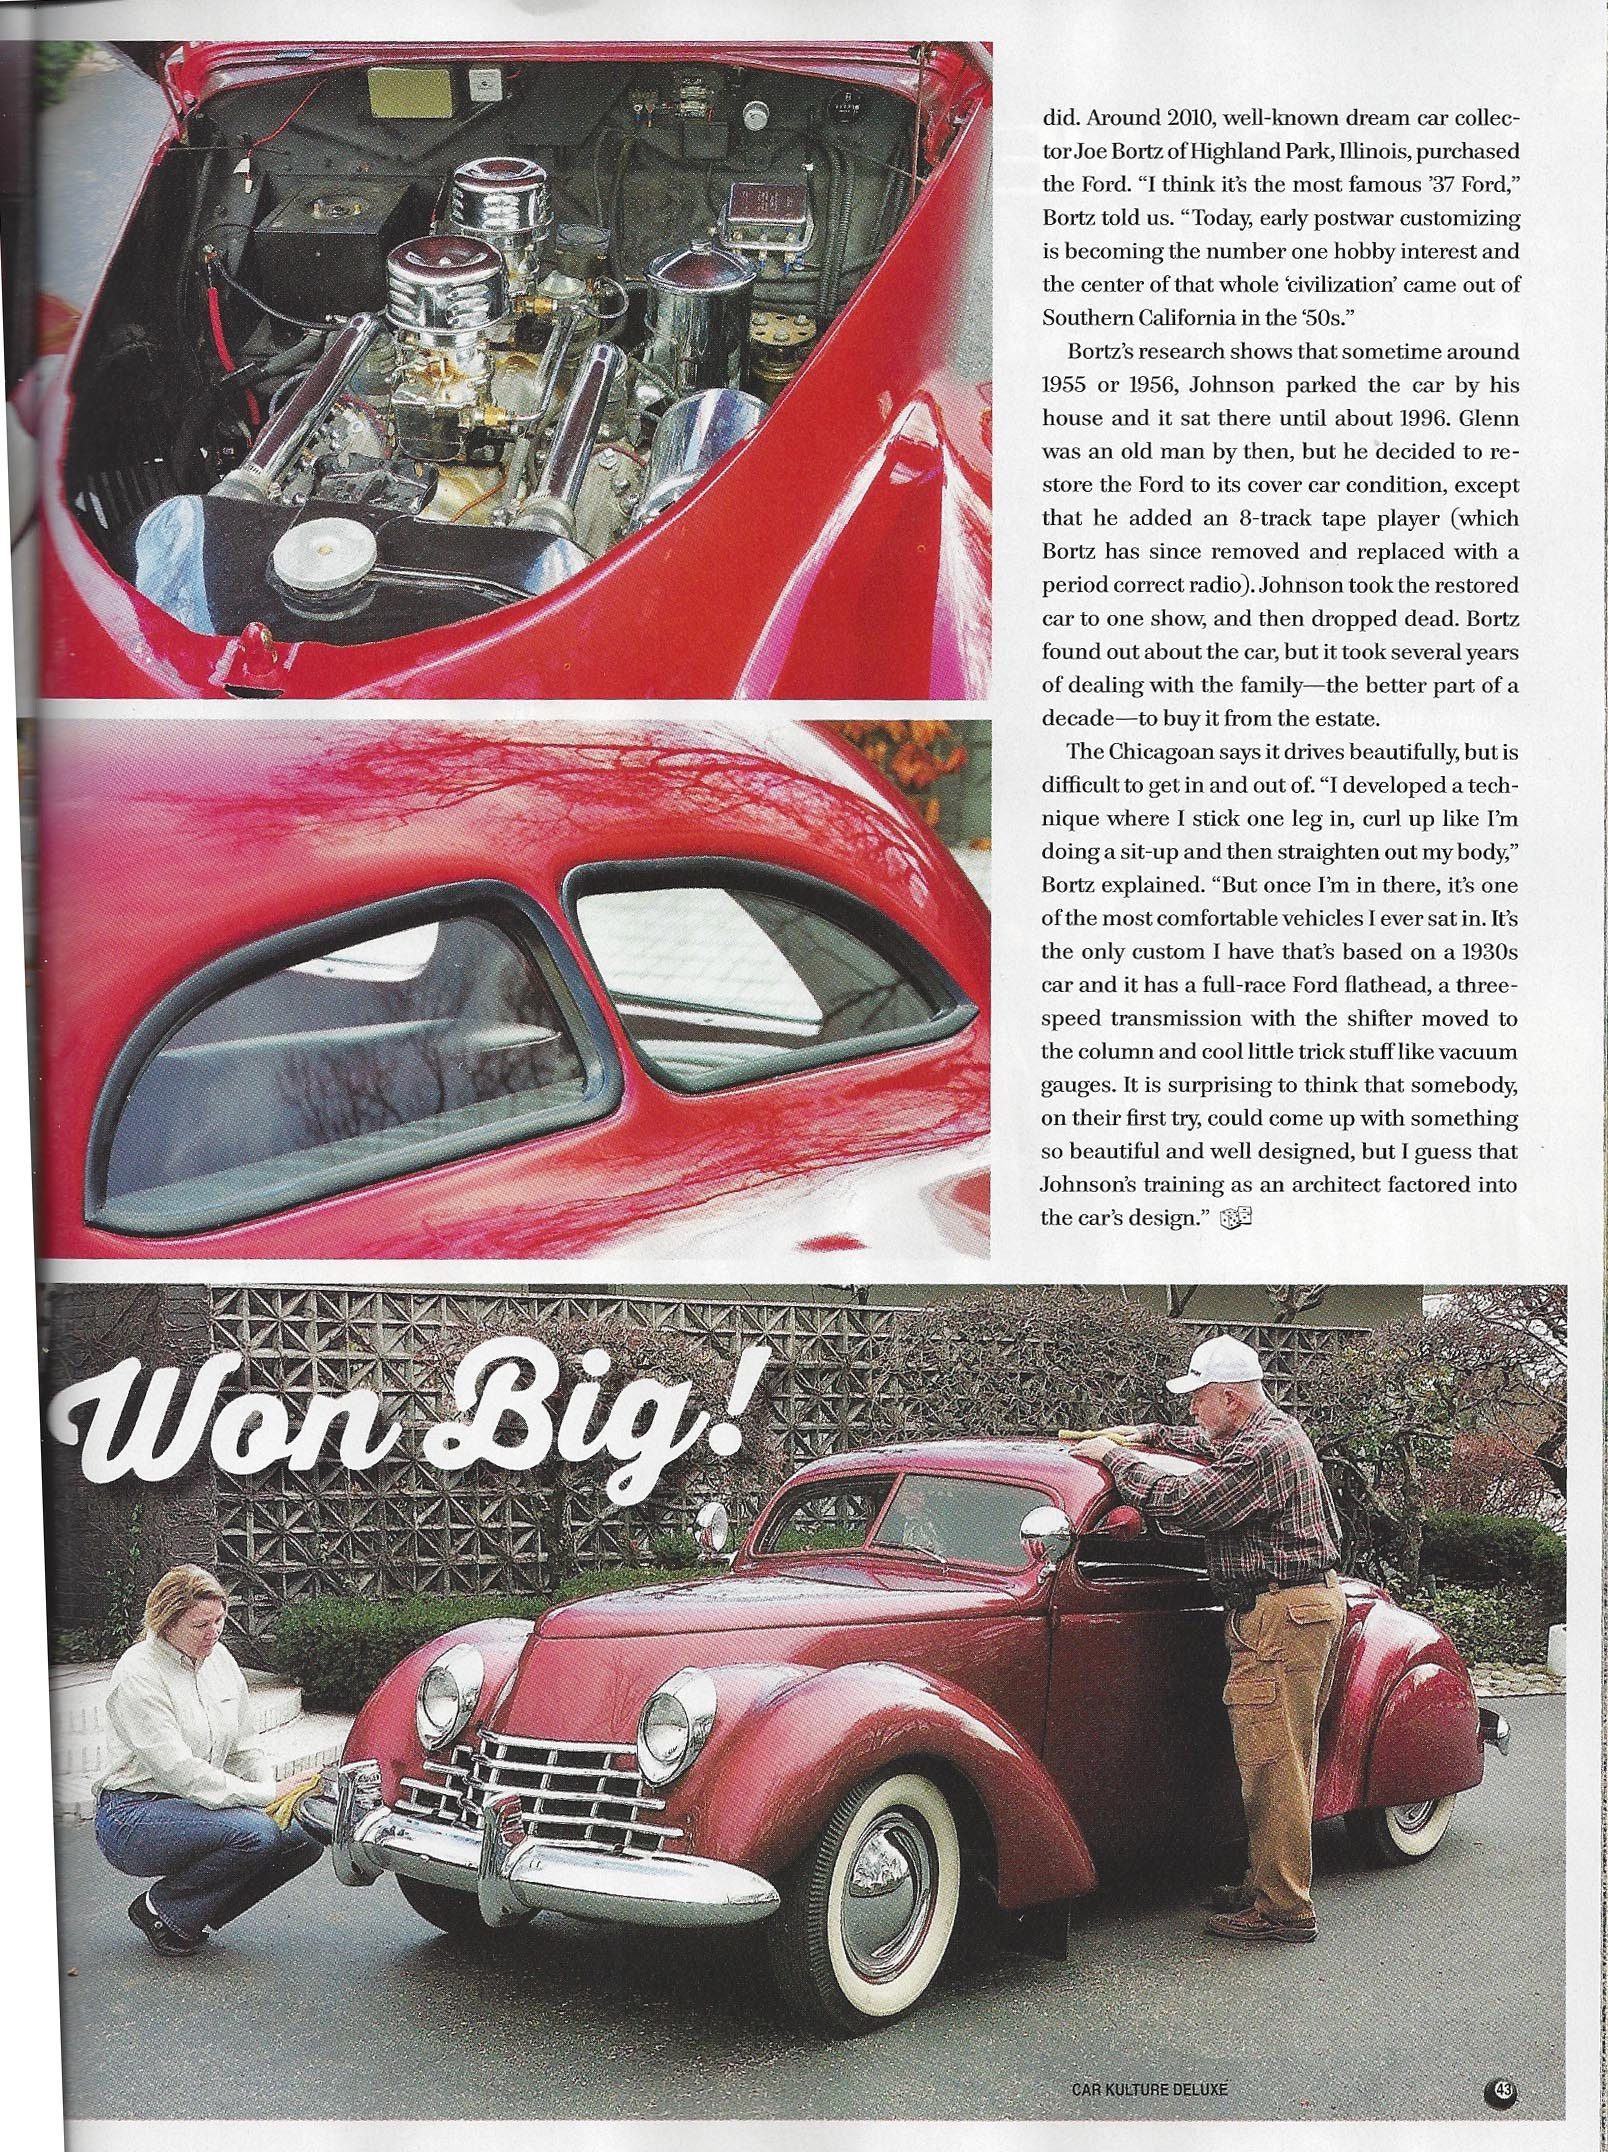 Vegas Architect Gambled on Custom Coupe and Won Big by John Gunnell, Photos by Al Rogers, Car Kulture Deluxe Sept 2014